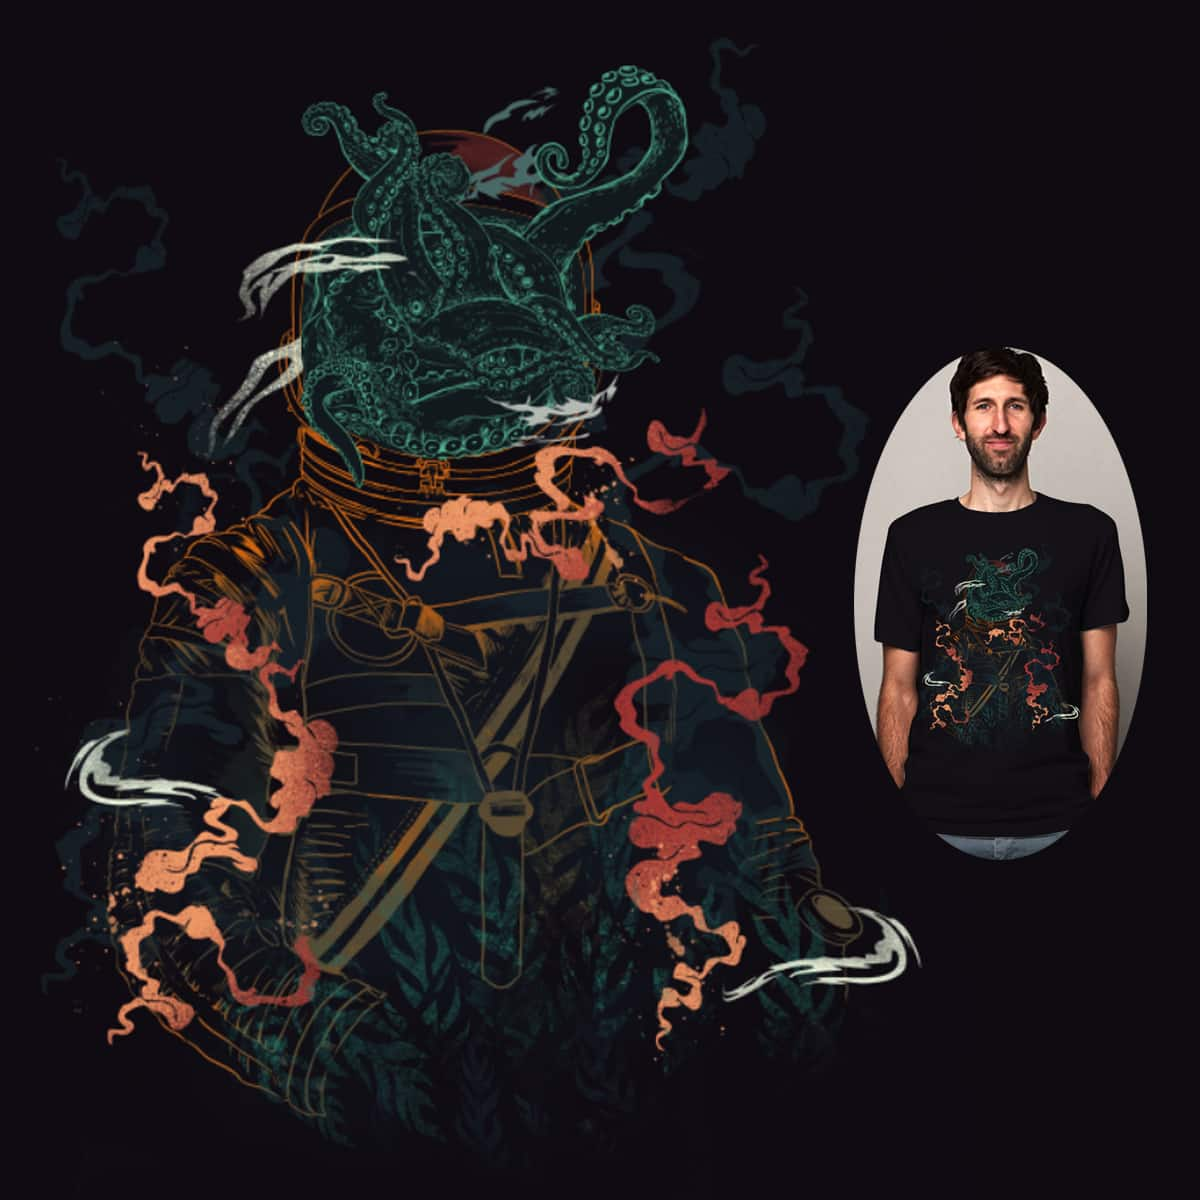 Into the Abyss by dandingeroz on Threadless